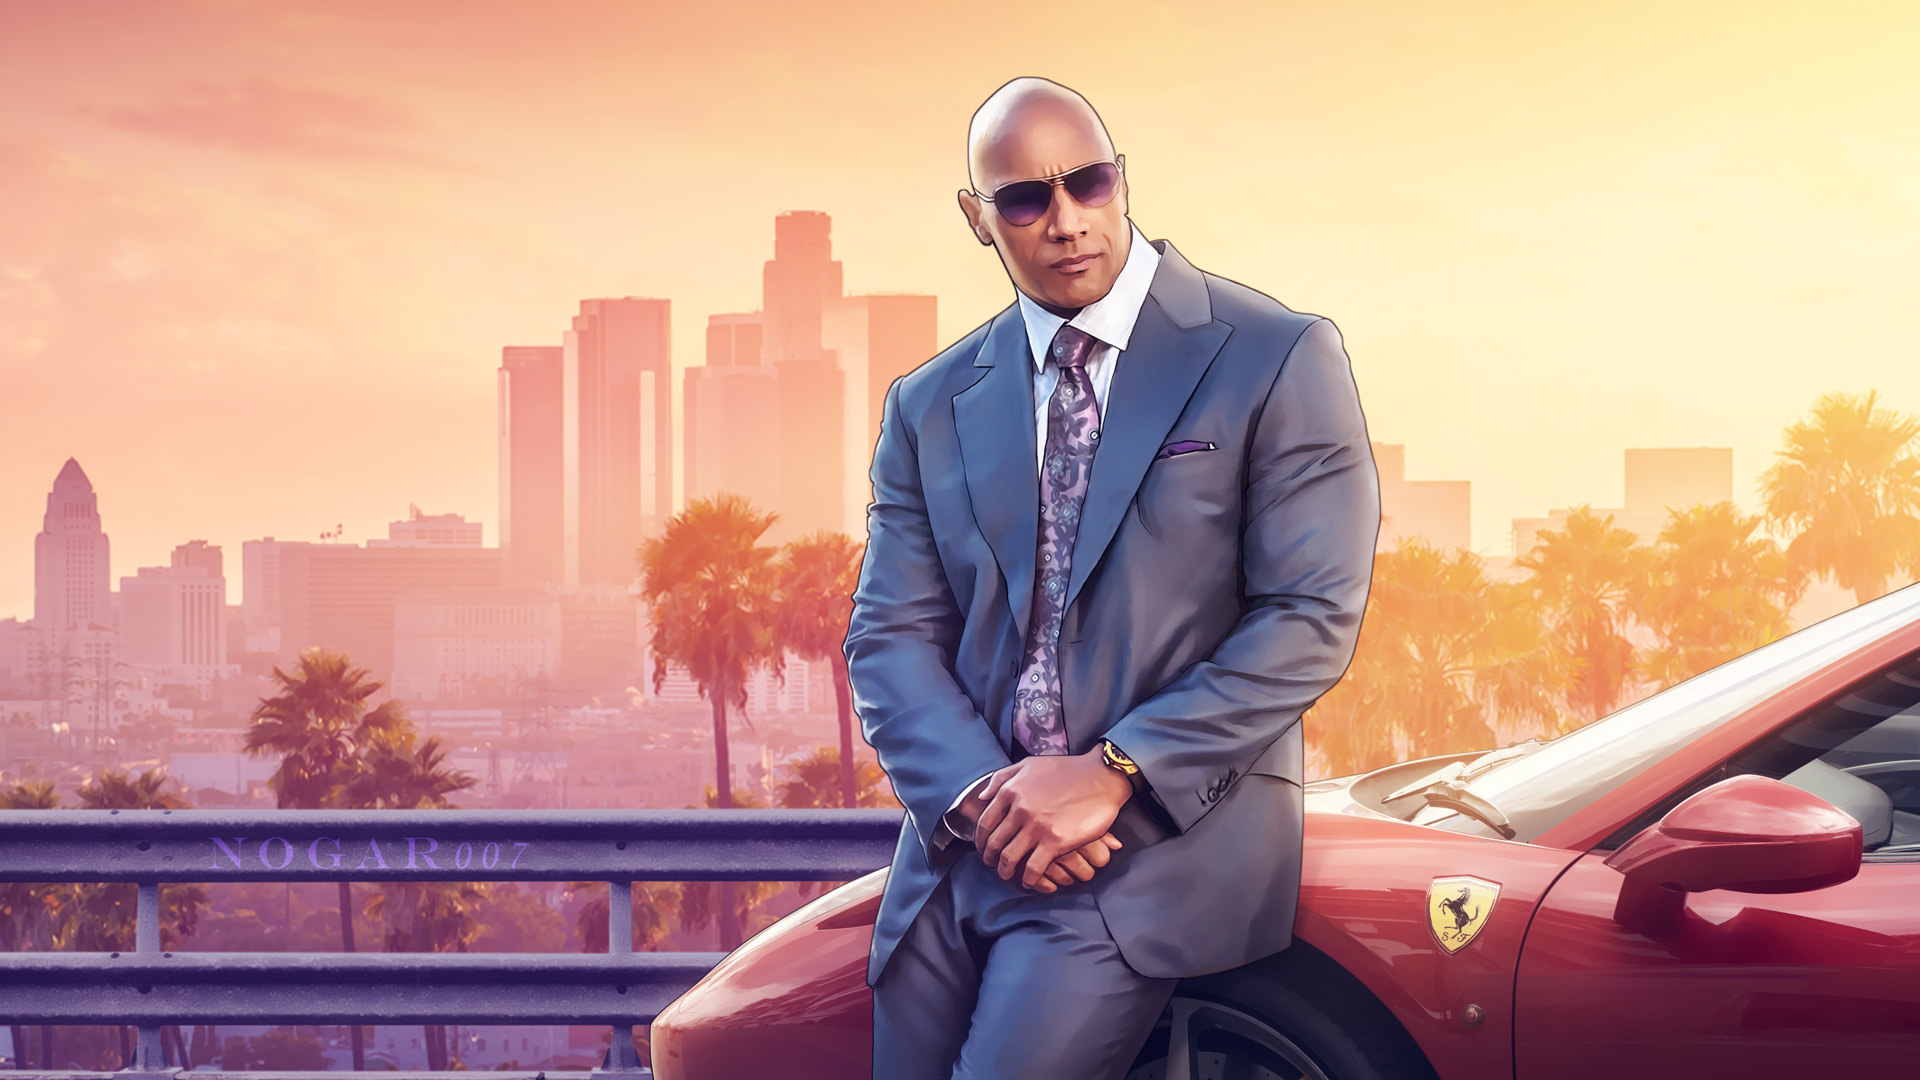 Rock As A GTAV Character  HD Games  4k Wallpapers  Images     Rock As A GTAV Character